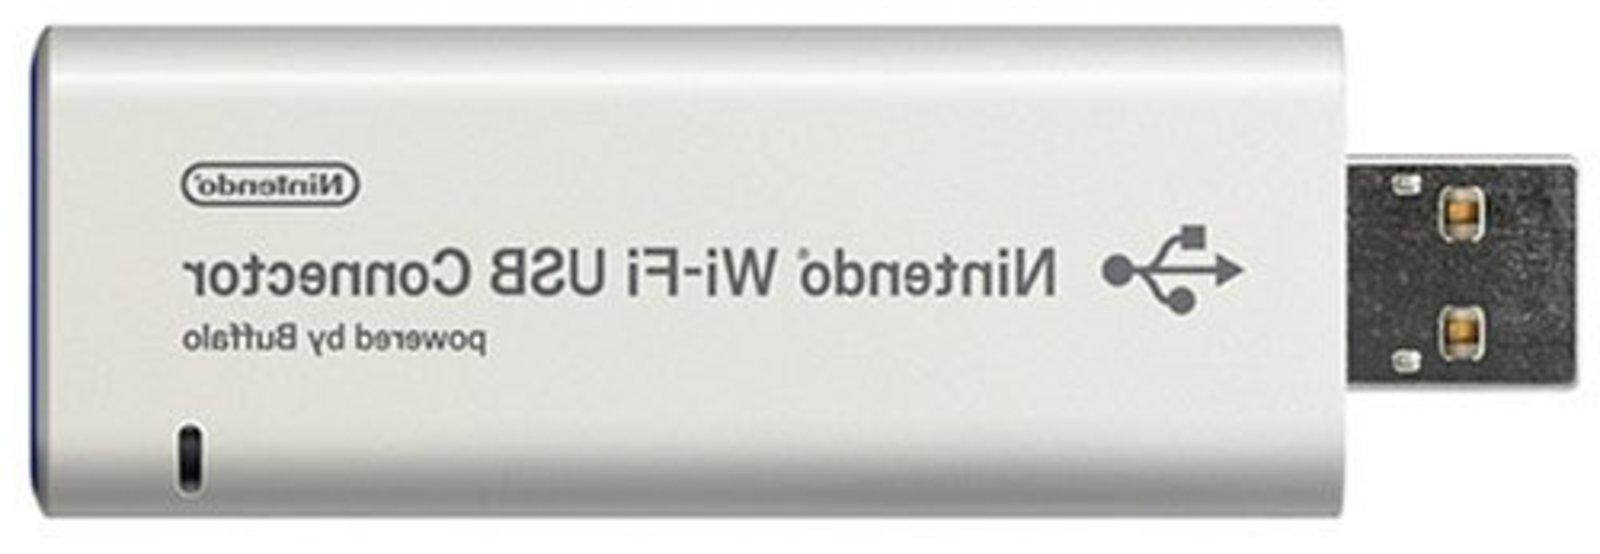 wi fi usb connector new from japan